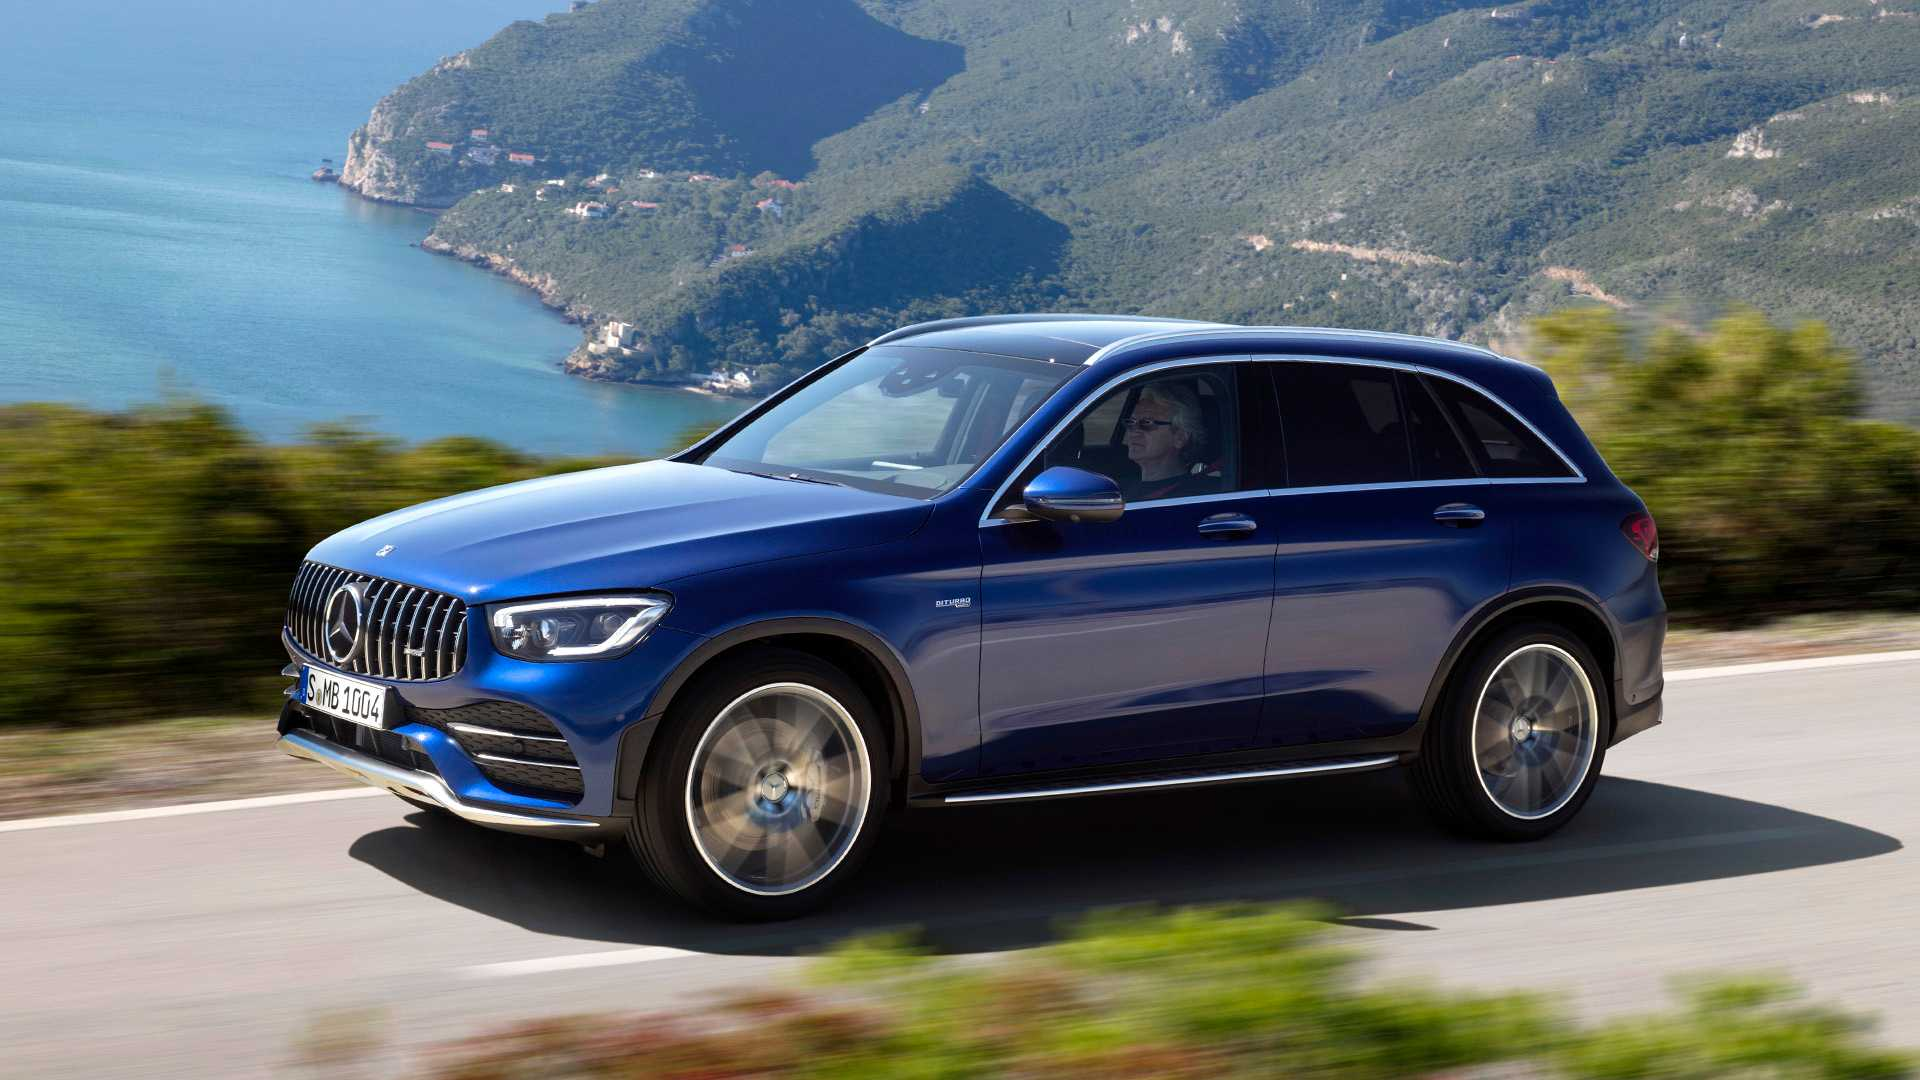 2020 Mercedes-AMG GLC 43 4MATIC Front Three-Quarter Wallpapers (3)